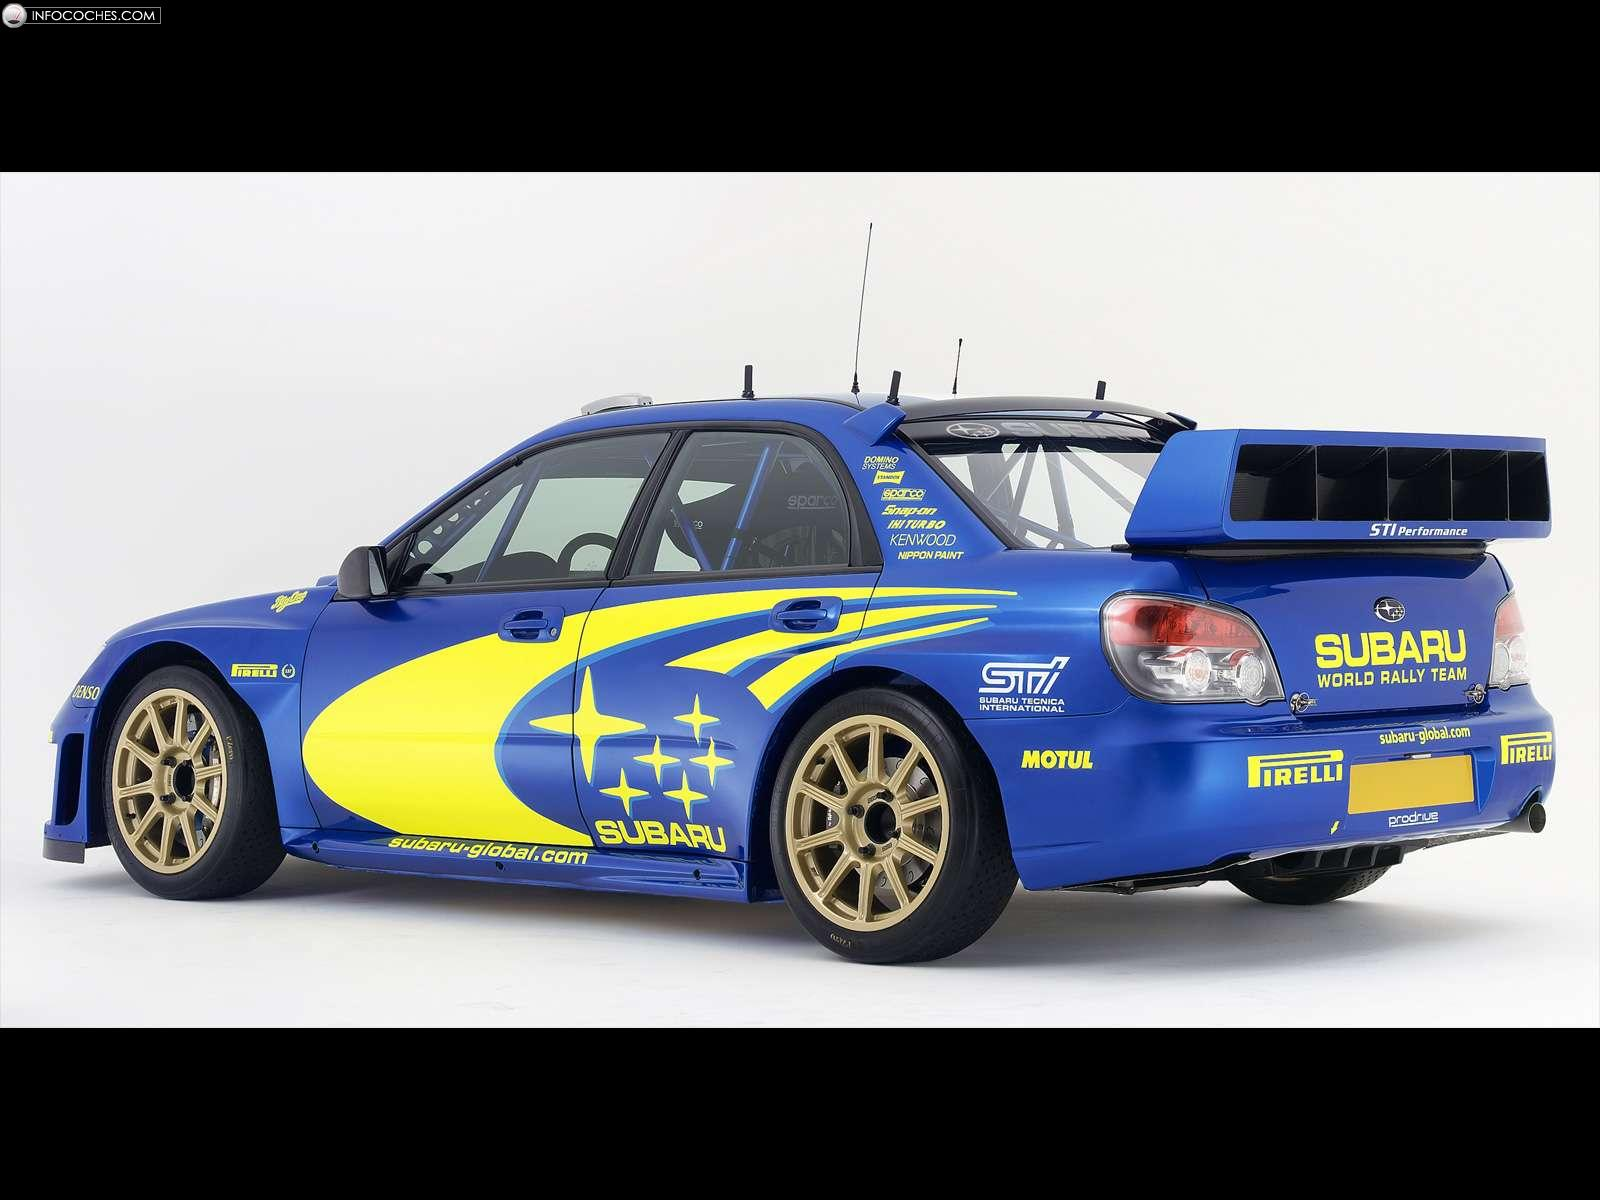 2017 Subaru Impreza WRC Prototype photo - 1